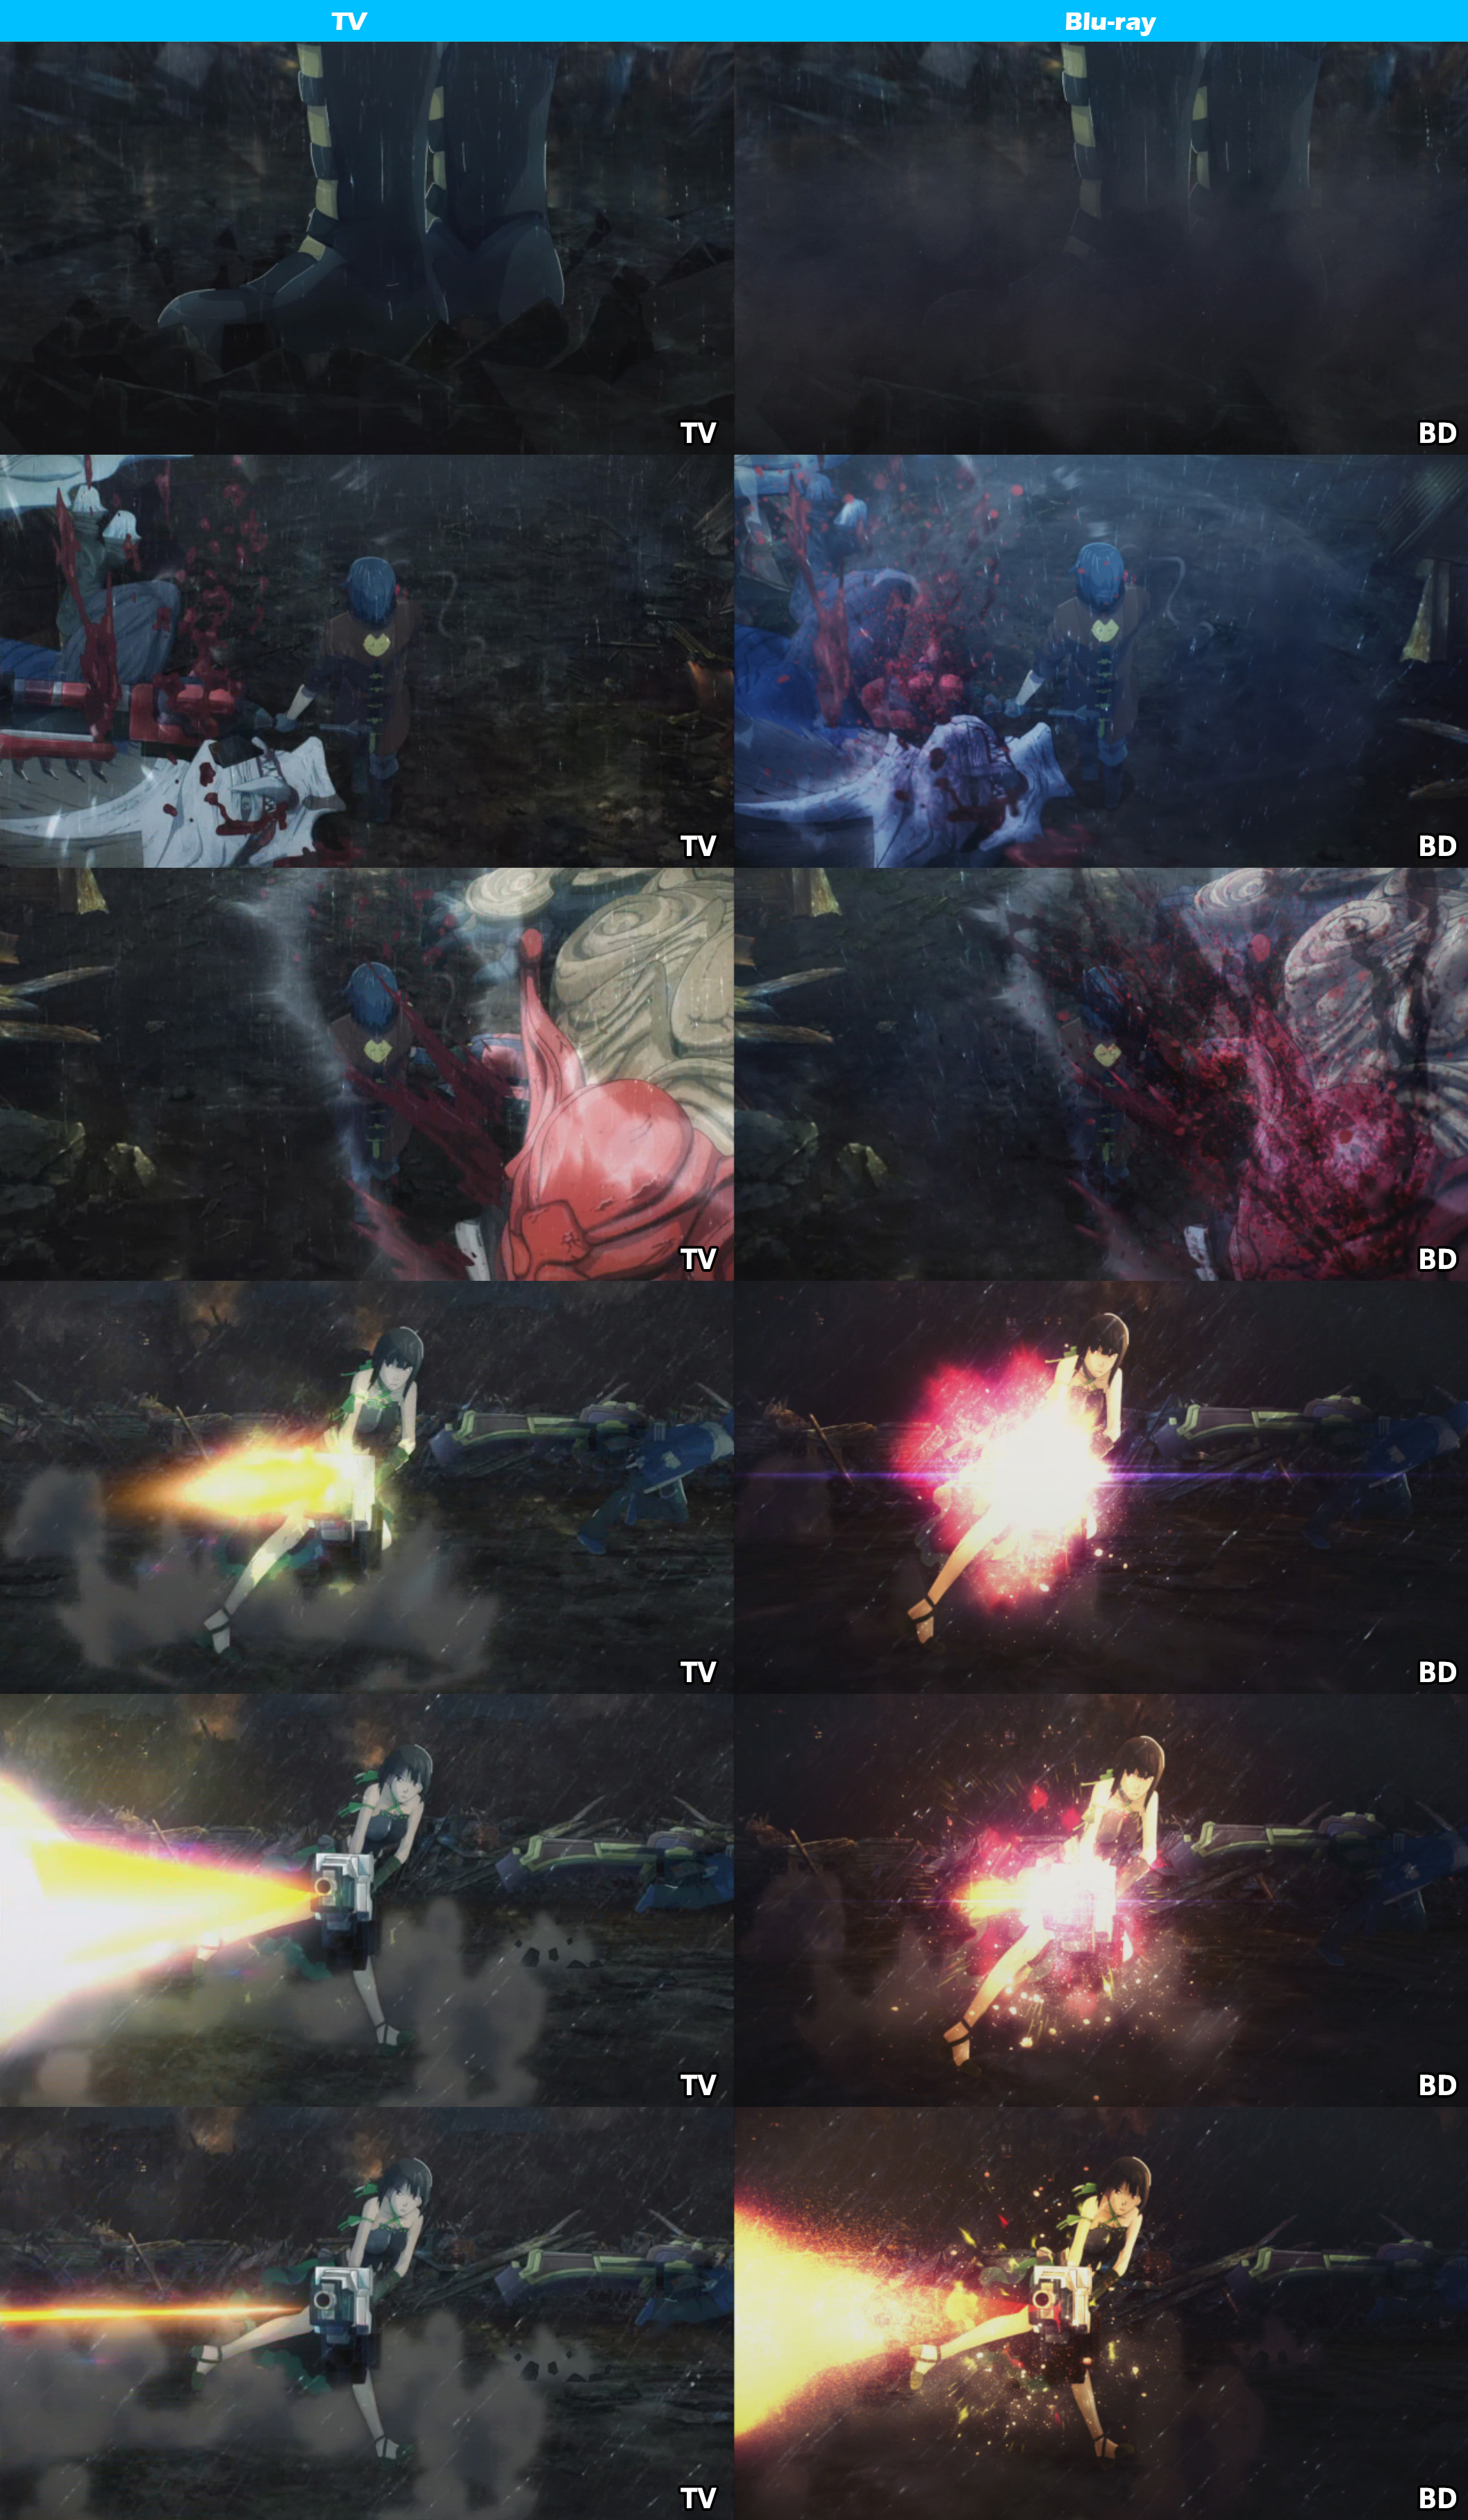 God-Eater-Anime-TV-and-Blu-ray-Comparison-7